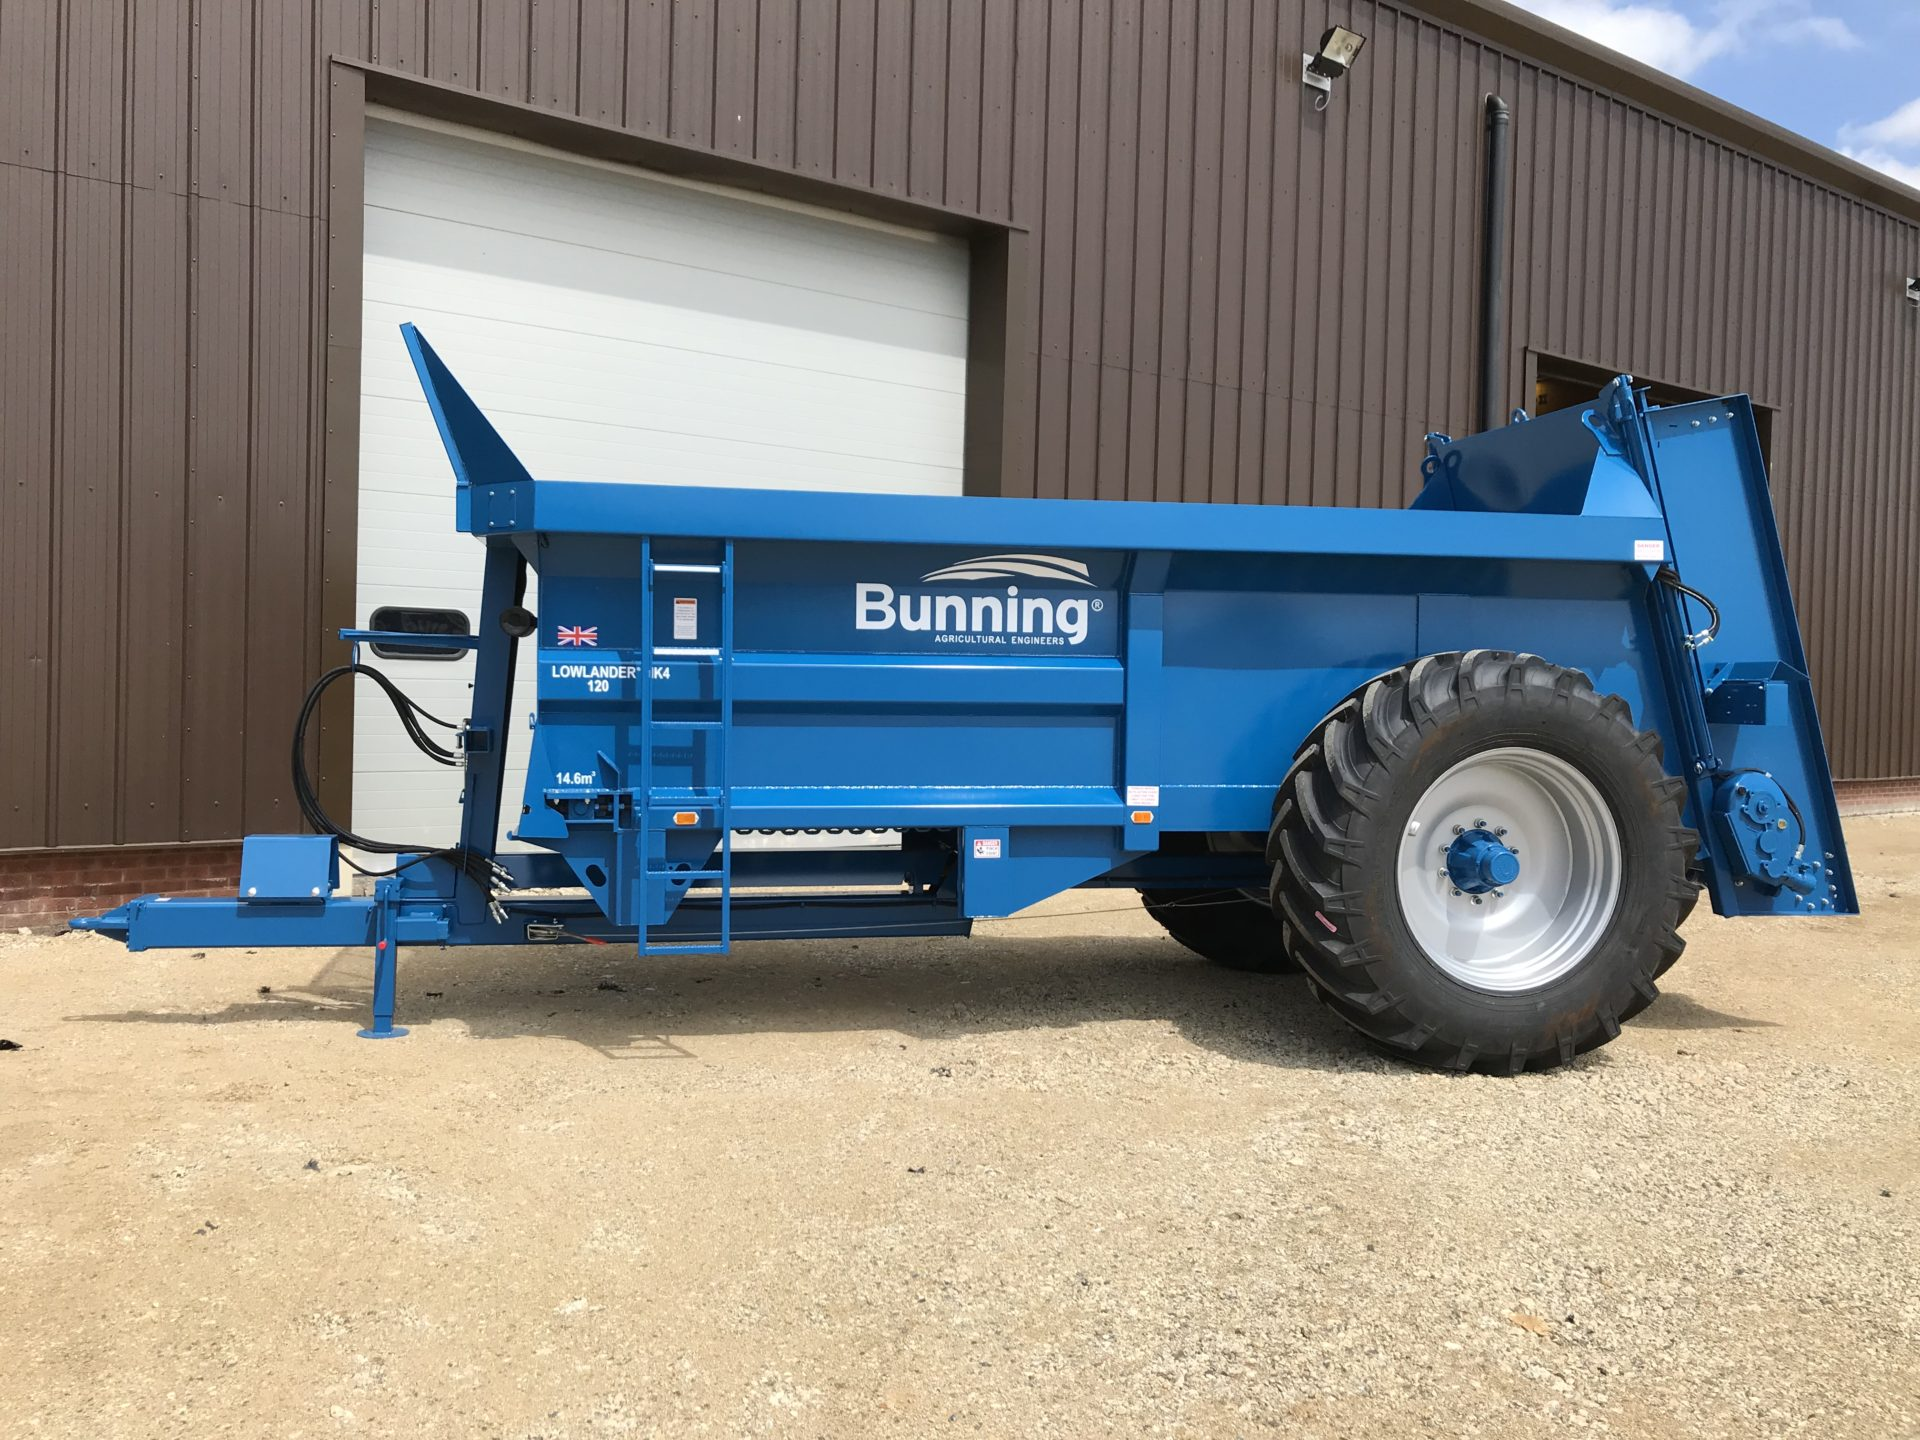 Lowlander 120 Mk4 with slurry door, narrow body pressings and 580/70 R38 wheels